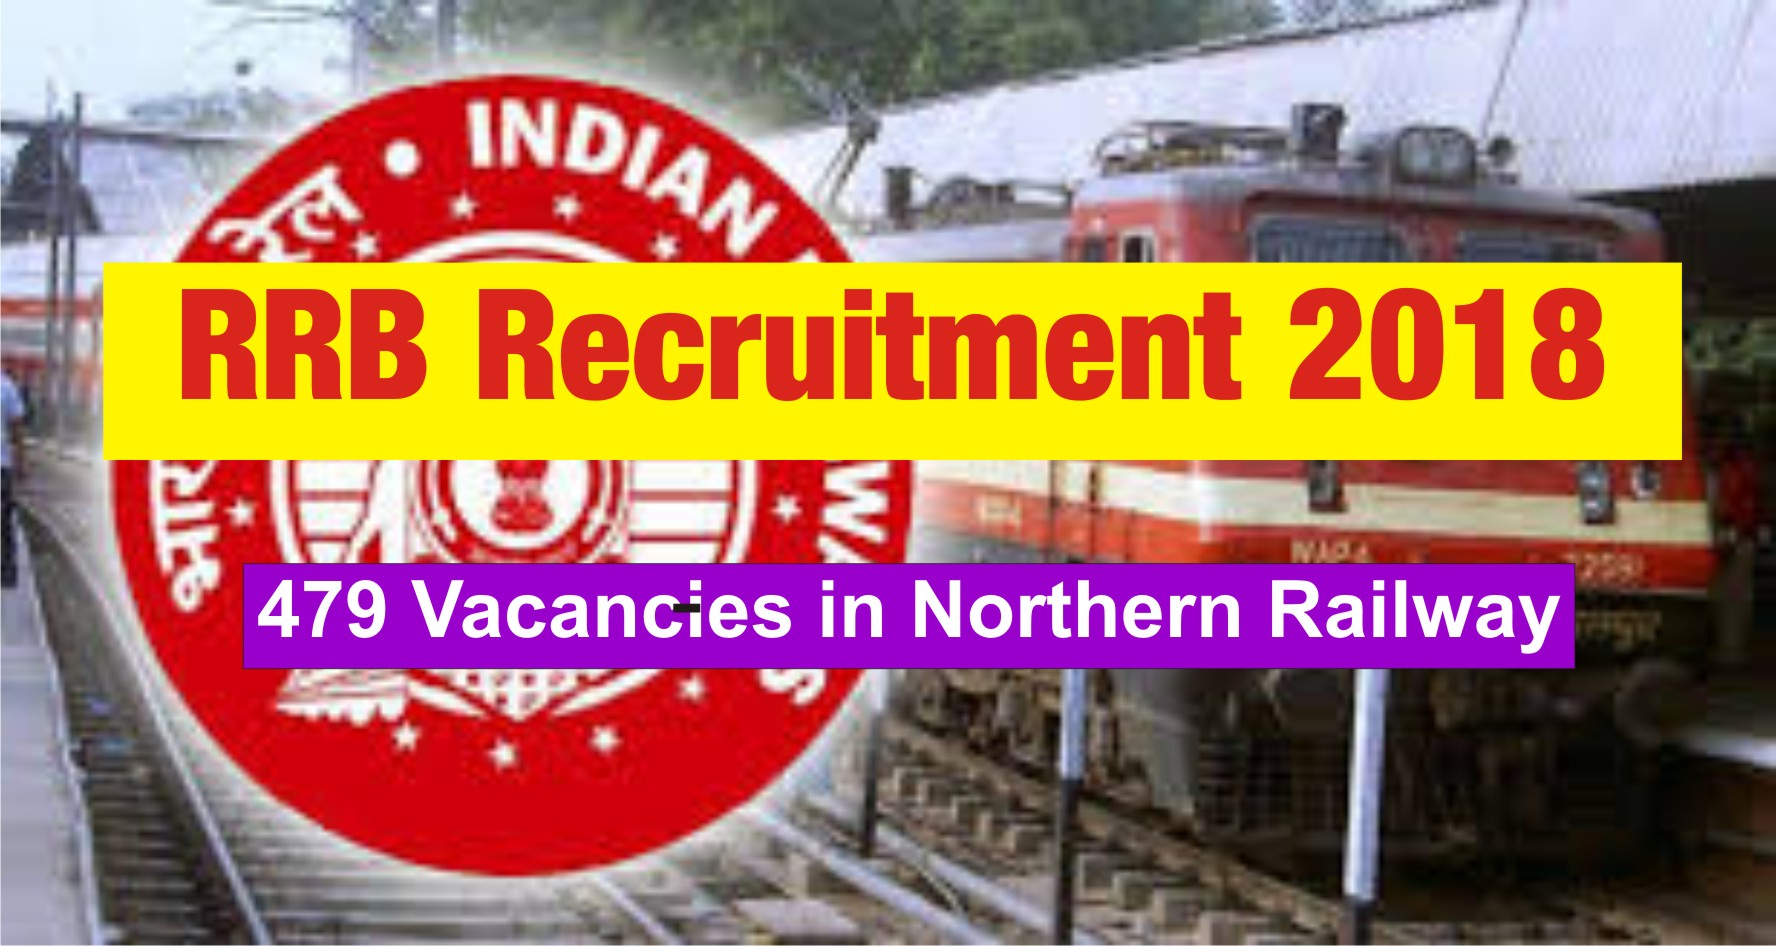 RRB Recruitment 2018 – 479 Vacancies in Northern Railway